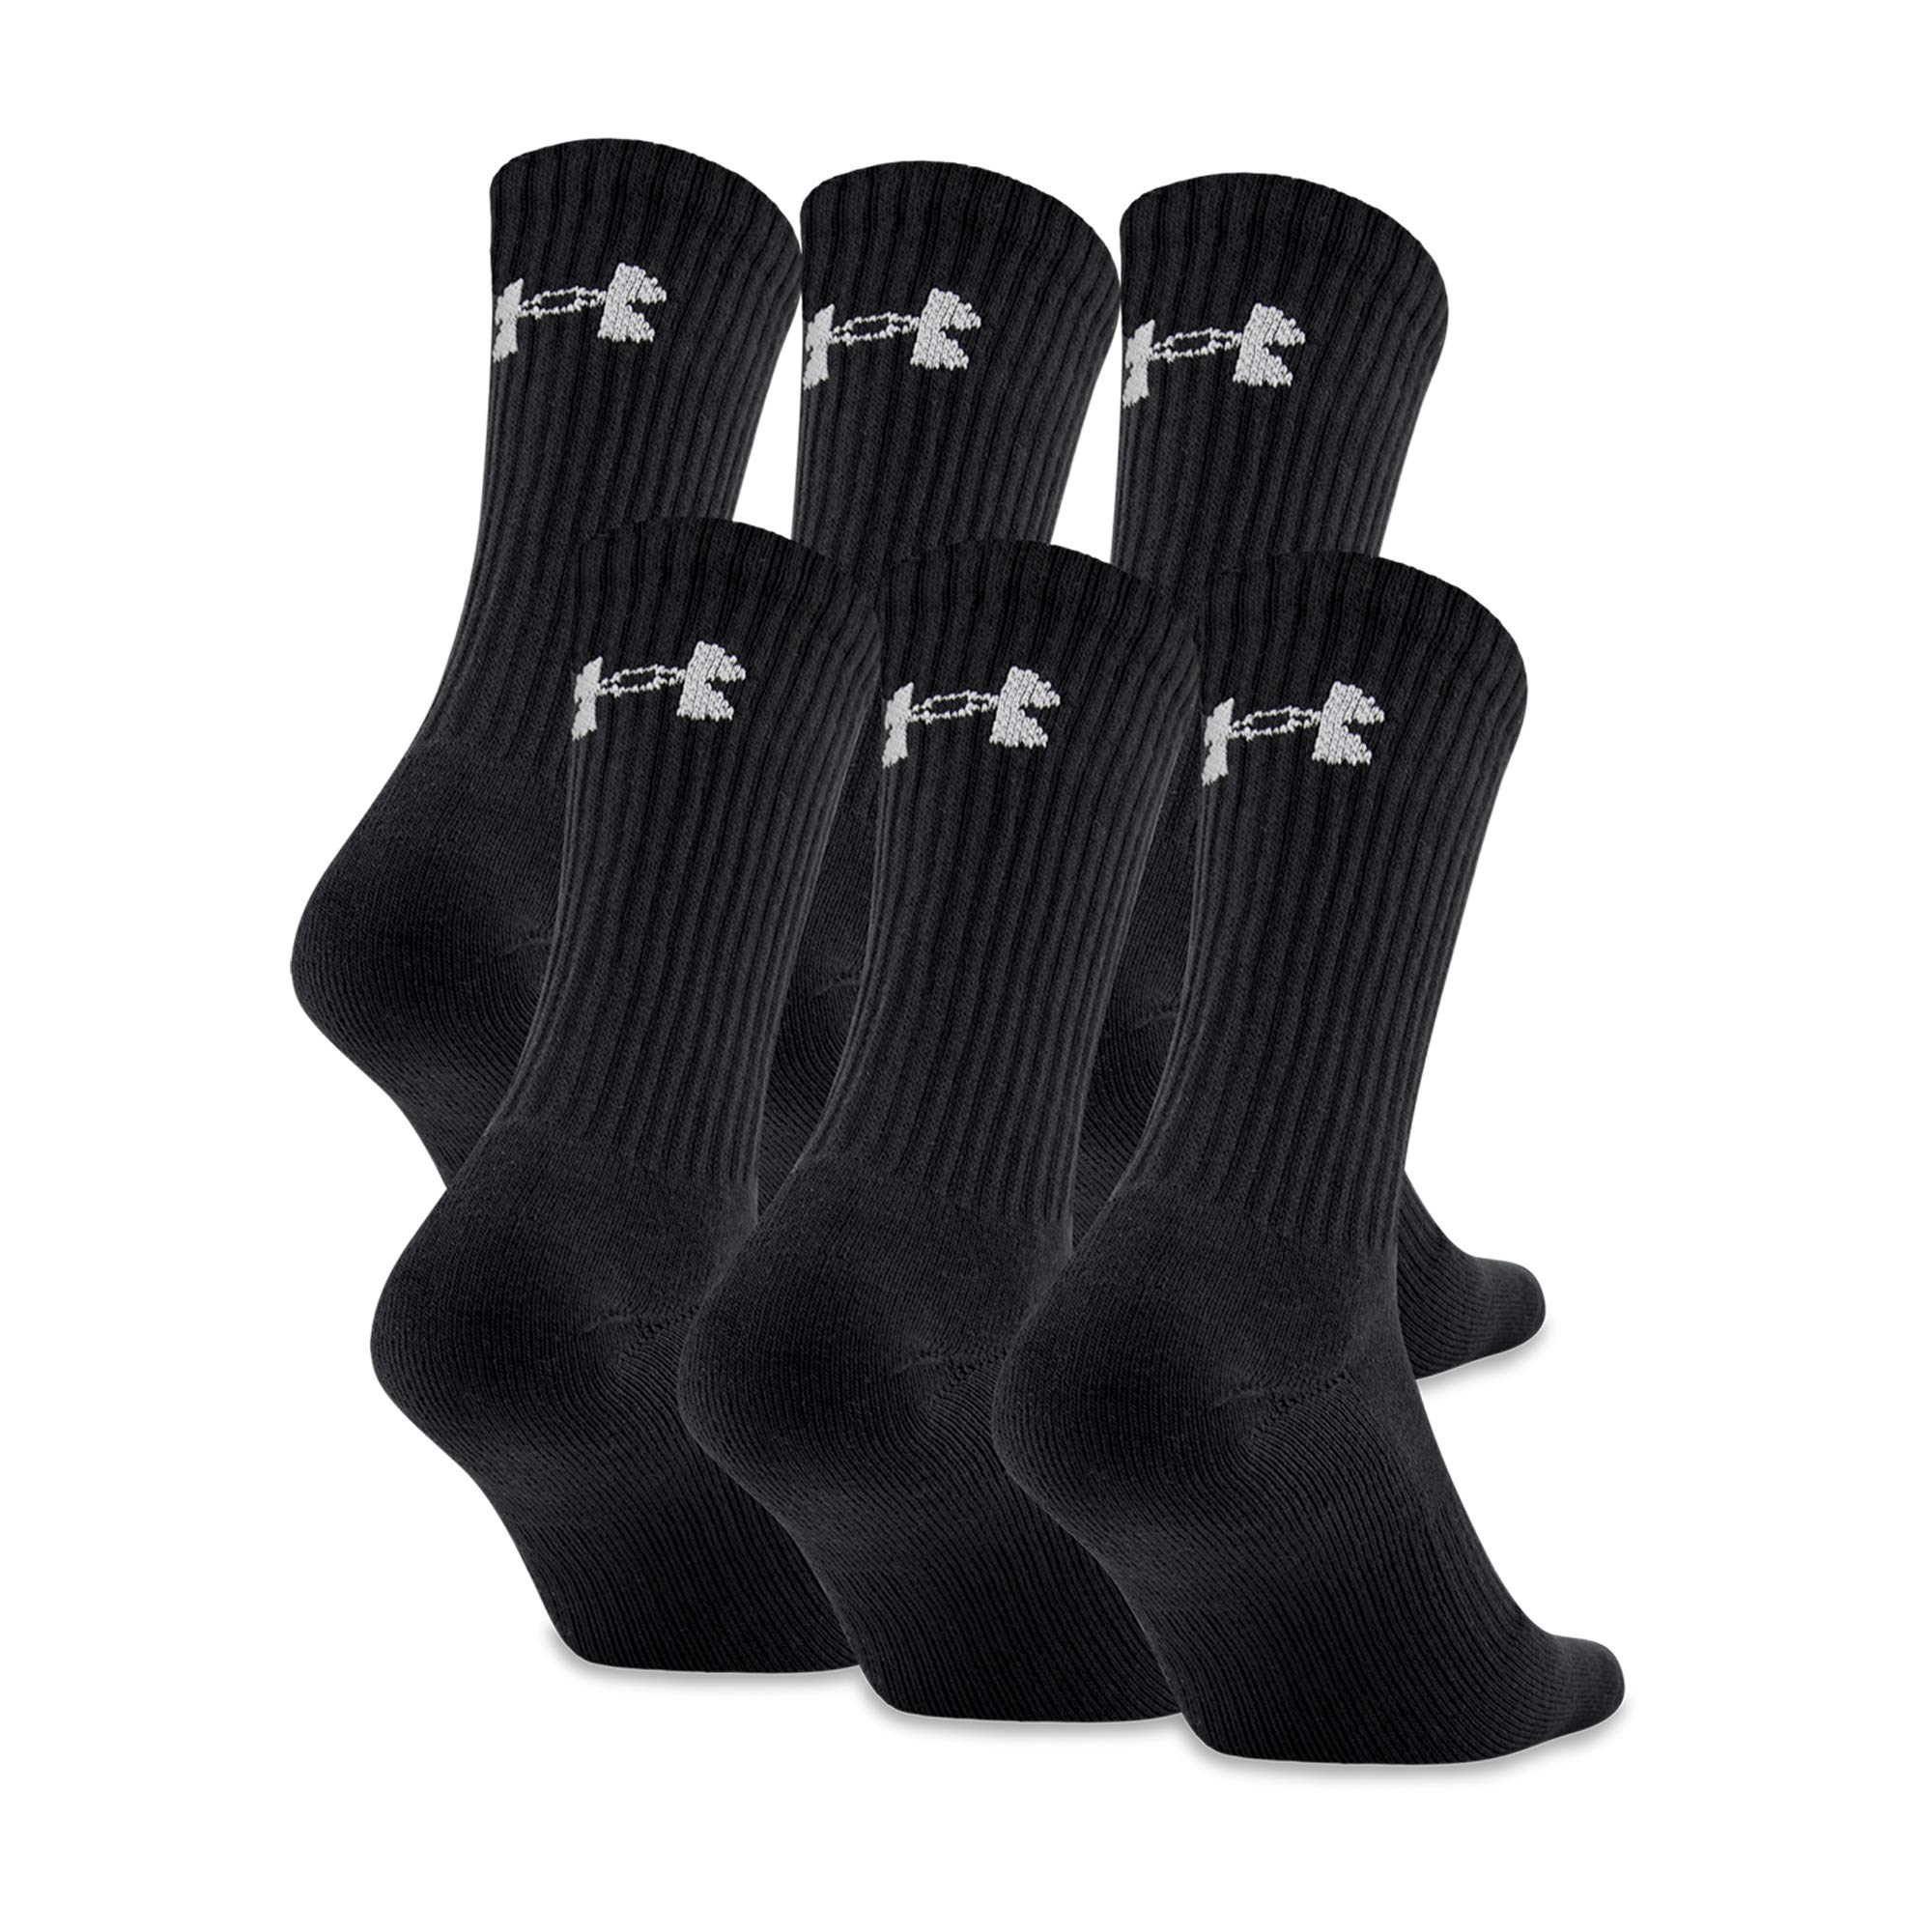 Under Armour Men's Charged Cotton 2.0 Socks, 6-Pair, Black/Gray, x Large by Under Armour